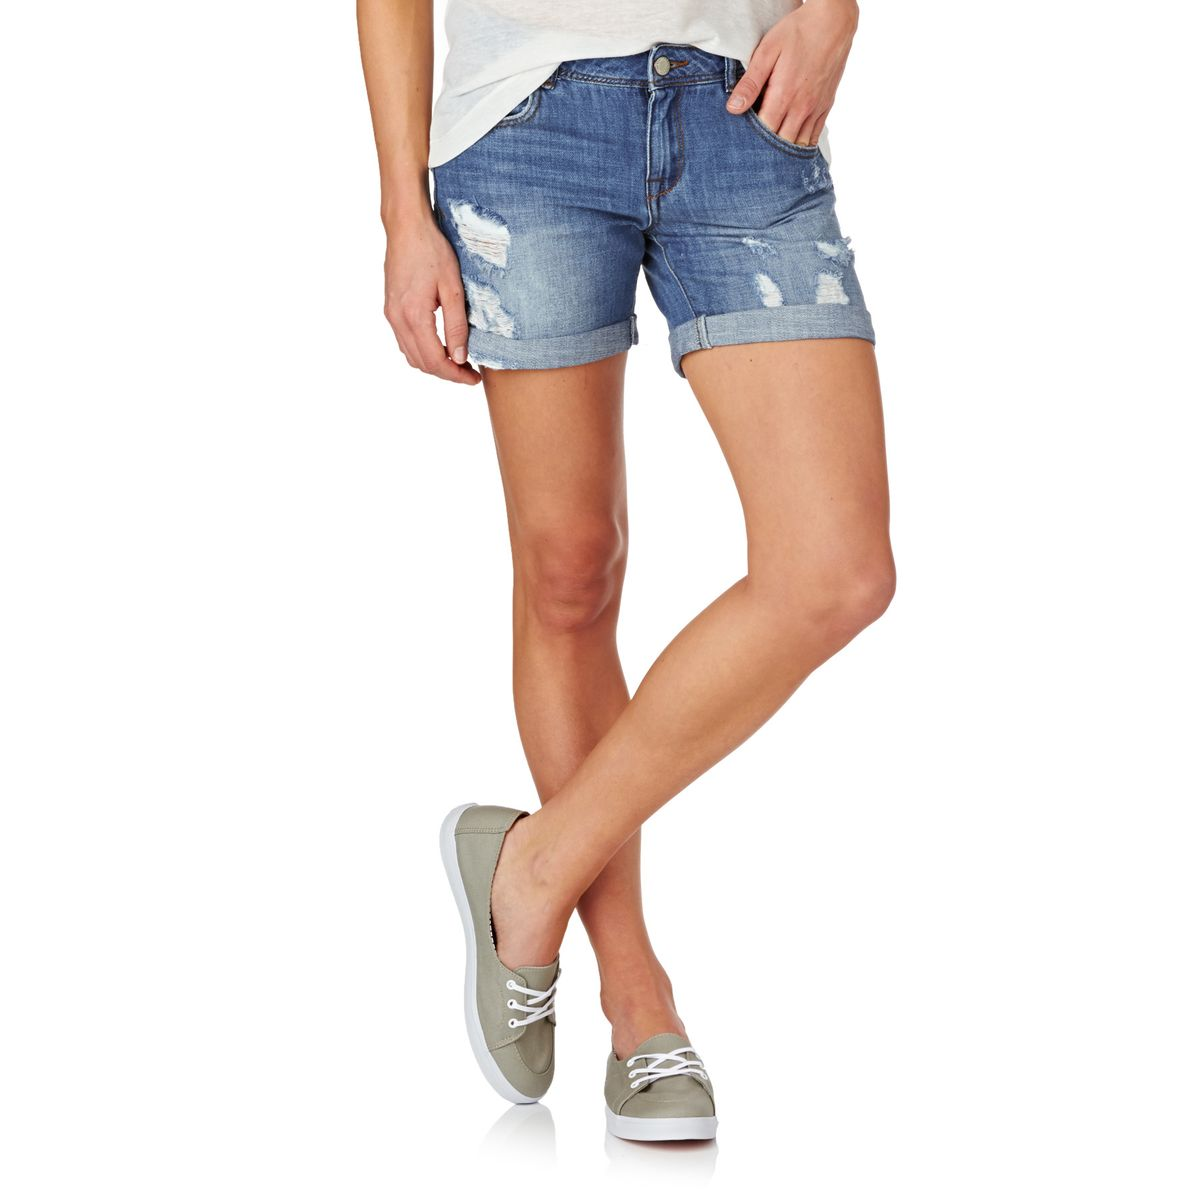 Superdry Steph Boyfriend Shorts - Camping outfit